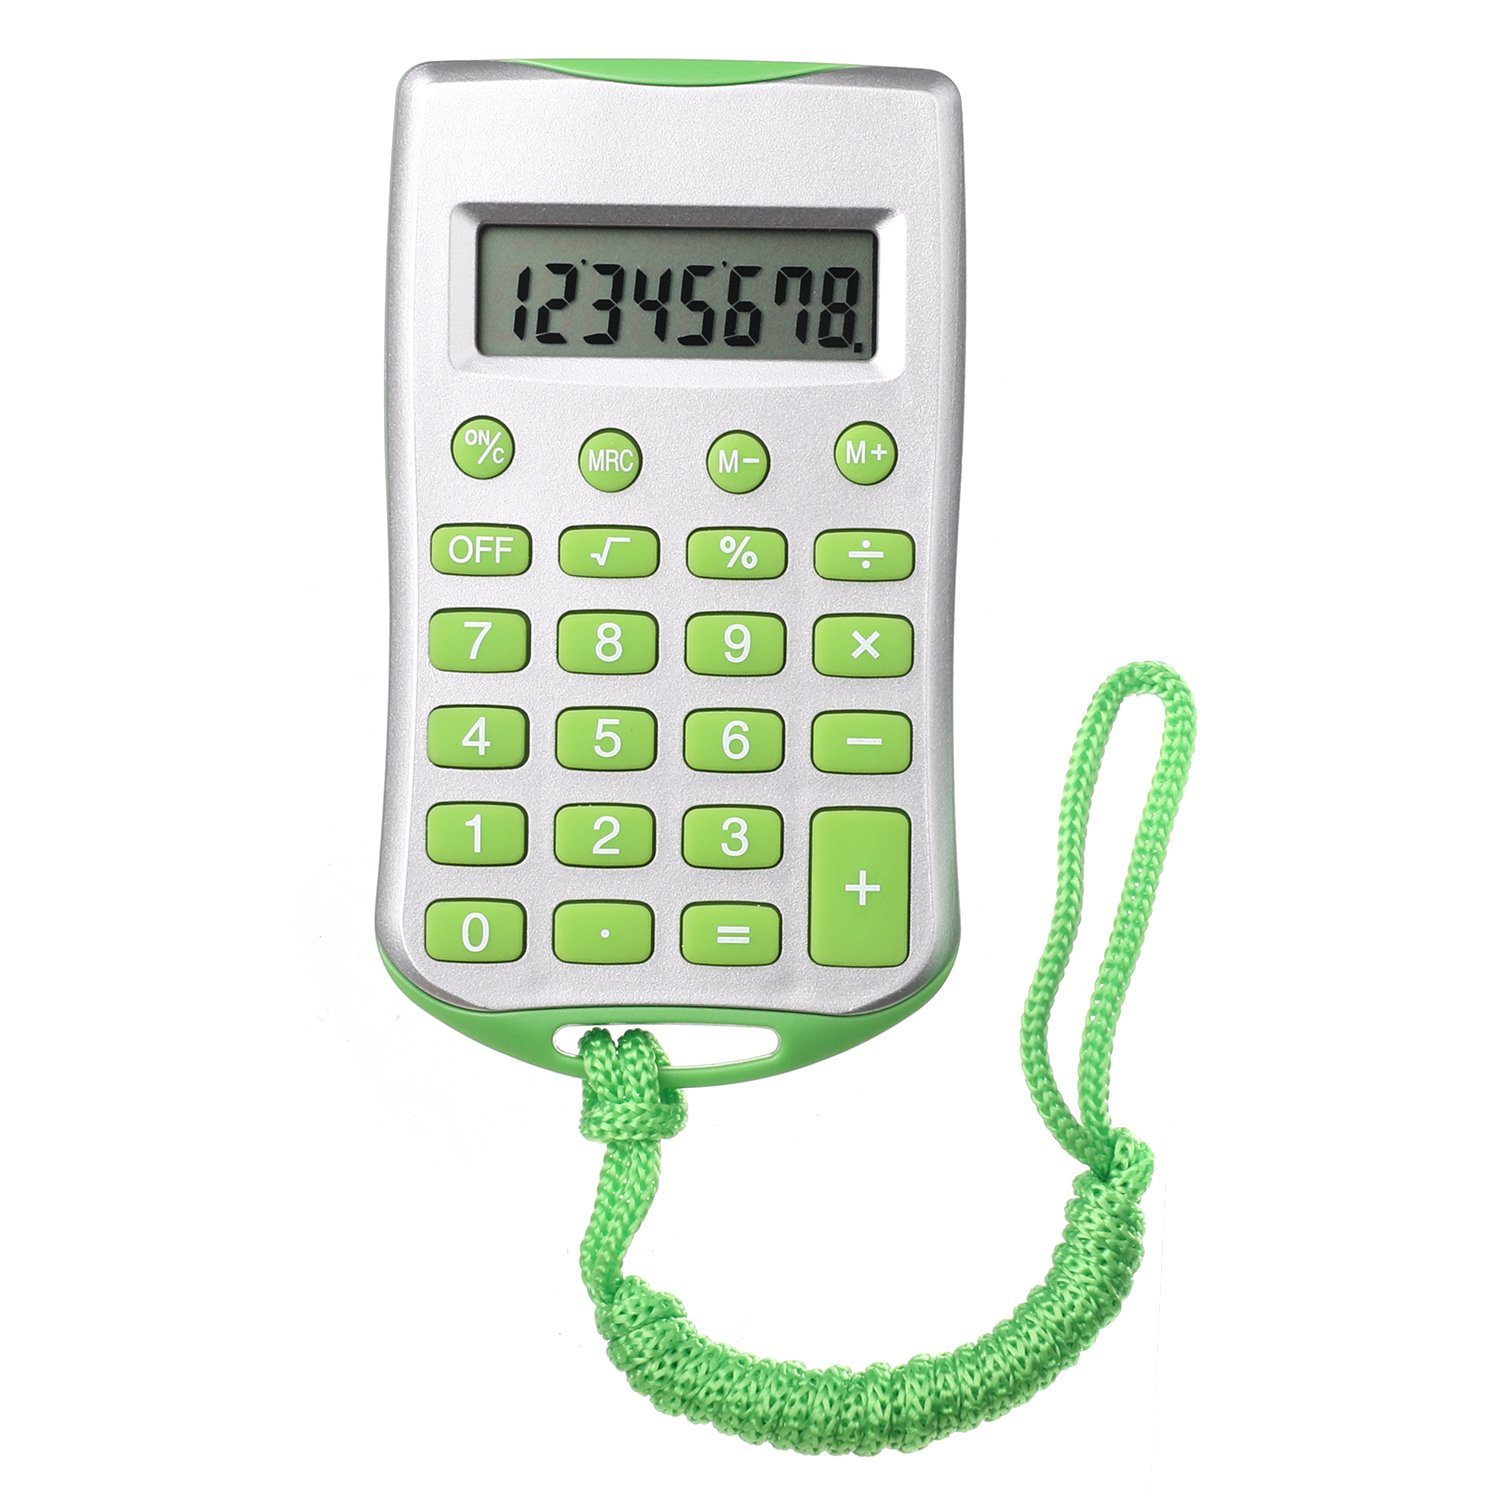 Mini Standard Function Handheld Calculator 8-digit Display with Lanyard - Green Bear Motion BMCALLANGRN